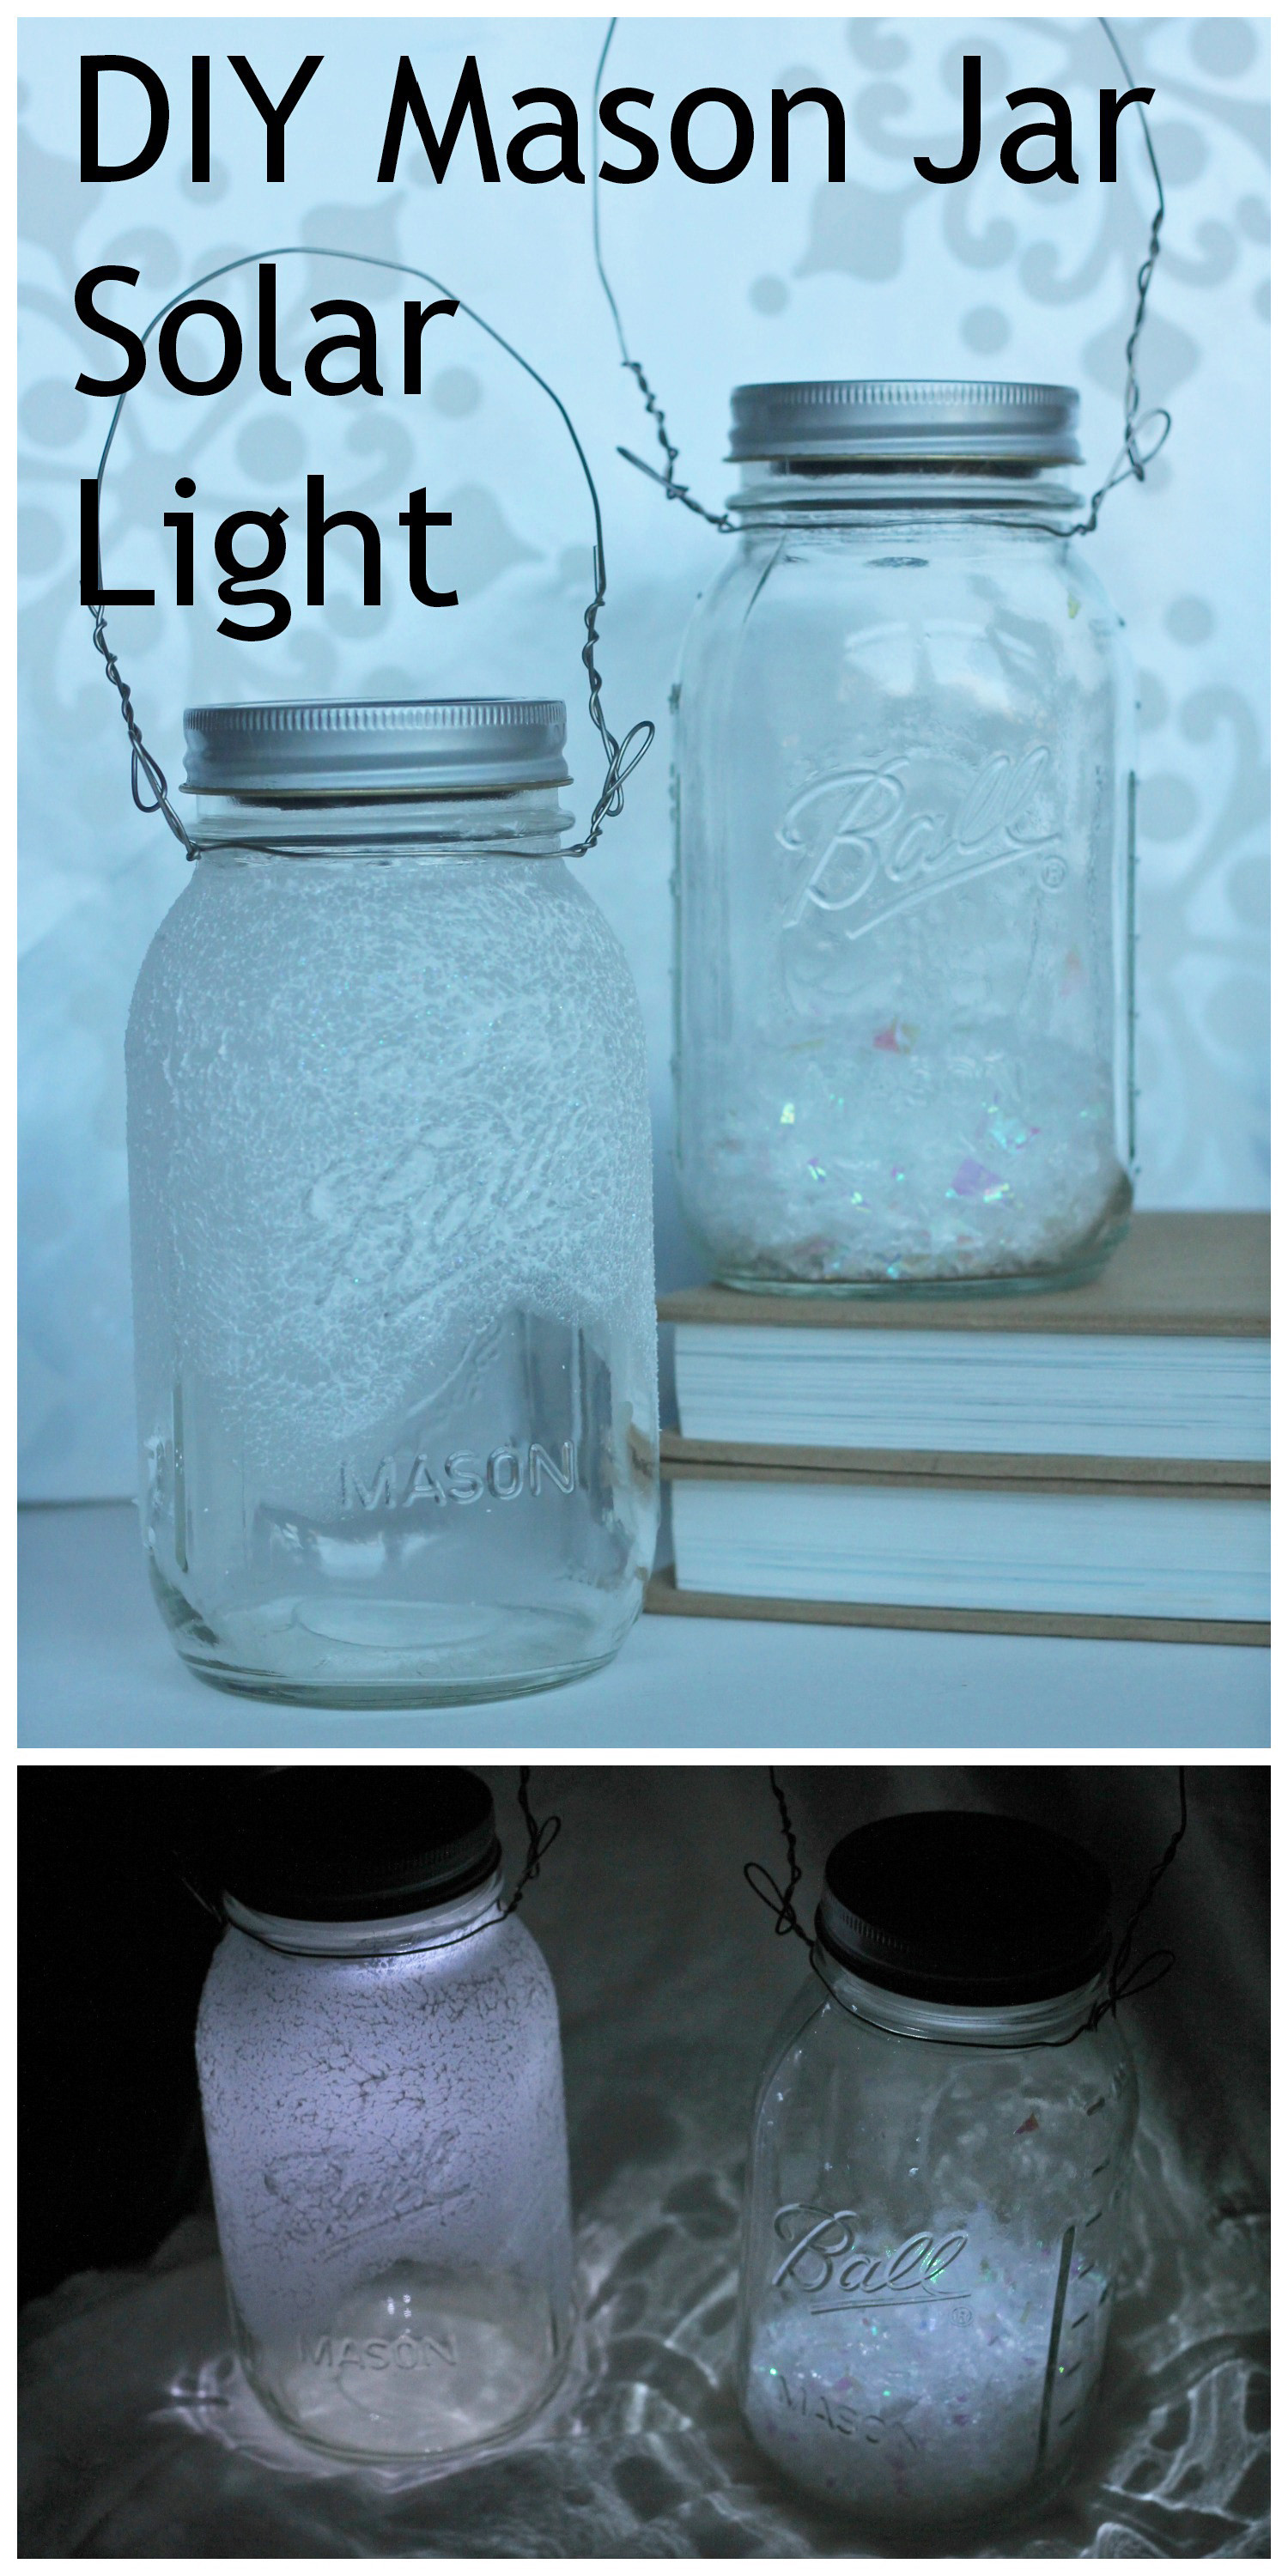 Best ideas about Mason Jars Solar Lights DIY . Save or Pin Mason Jar Solar Lights Tutorial Great For Winter Home Decor Now.